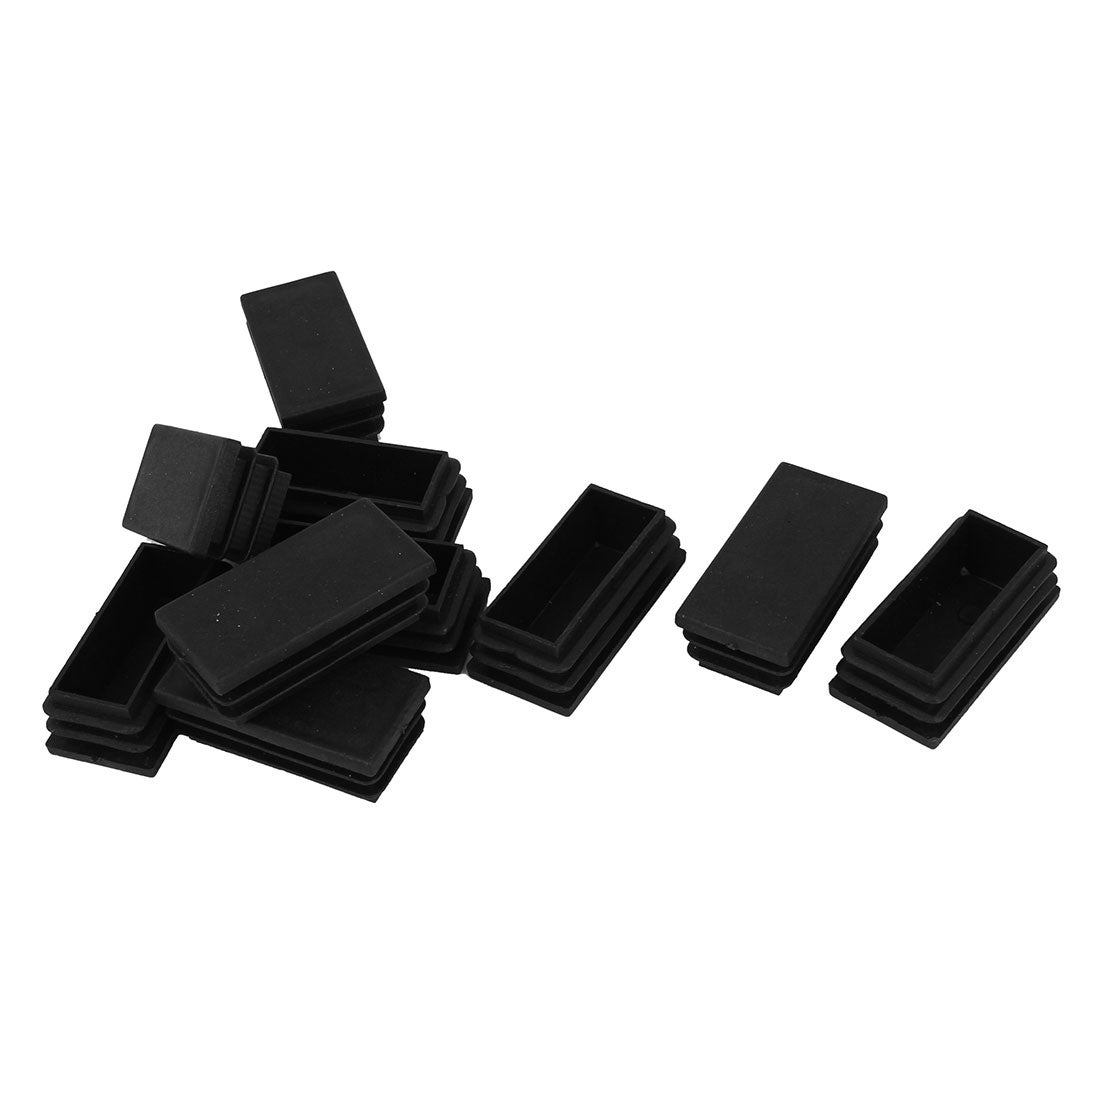 Unique Bargains 10 Pieces Plastic Blanking End Cap Inserts Fit 23mm x 48mm Rectangle Tube Pipe